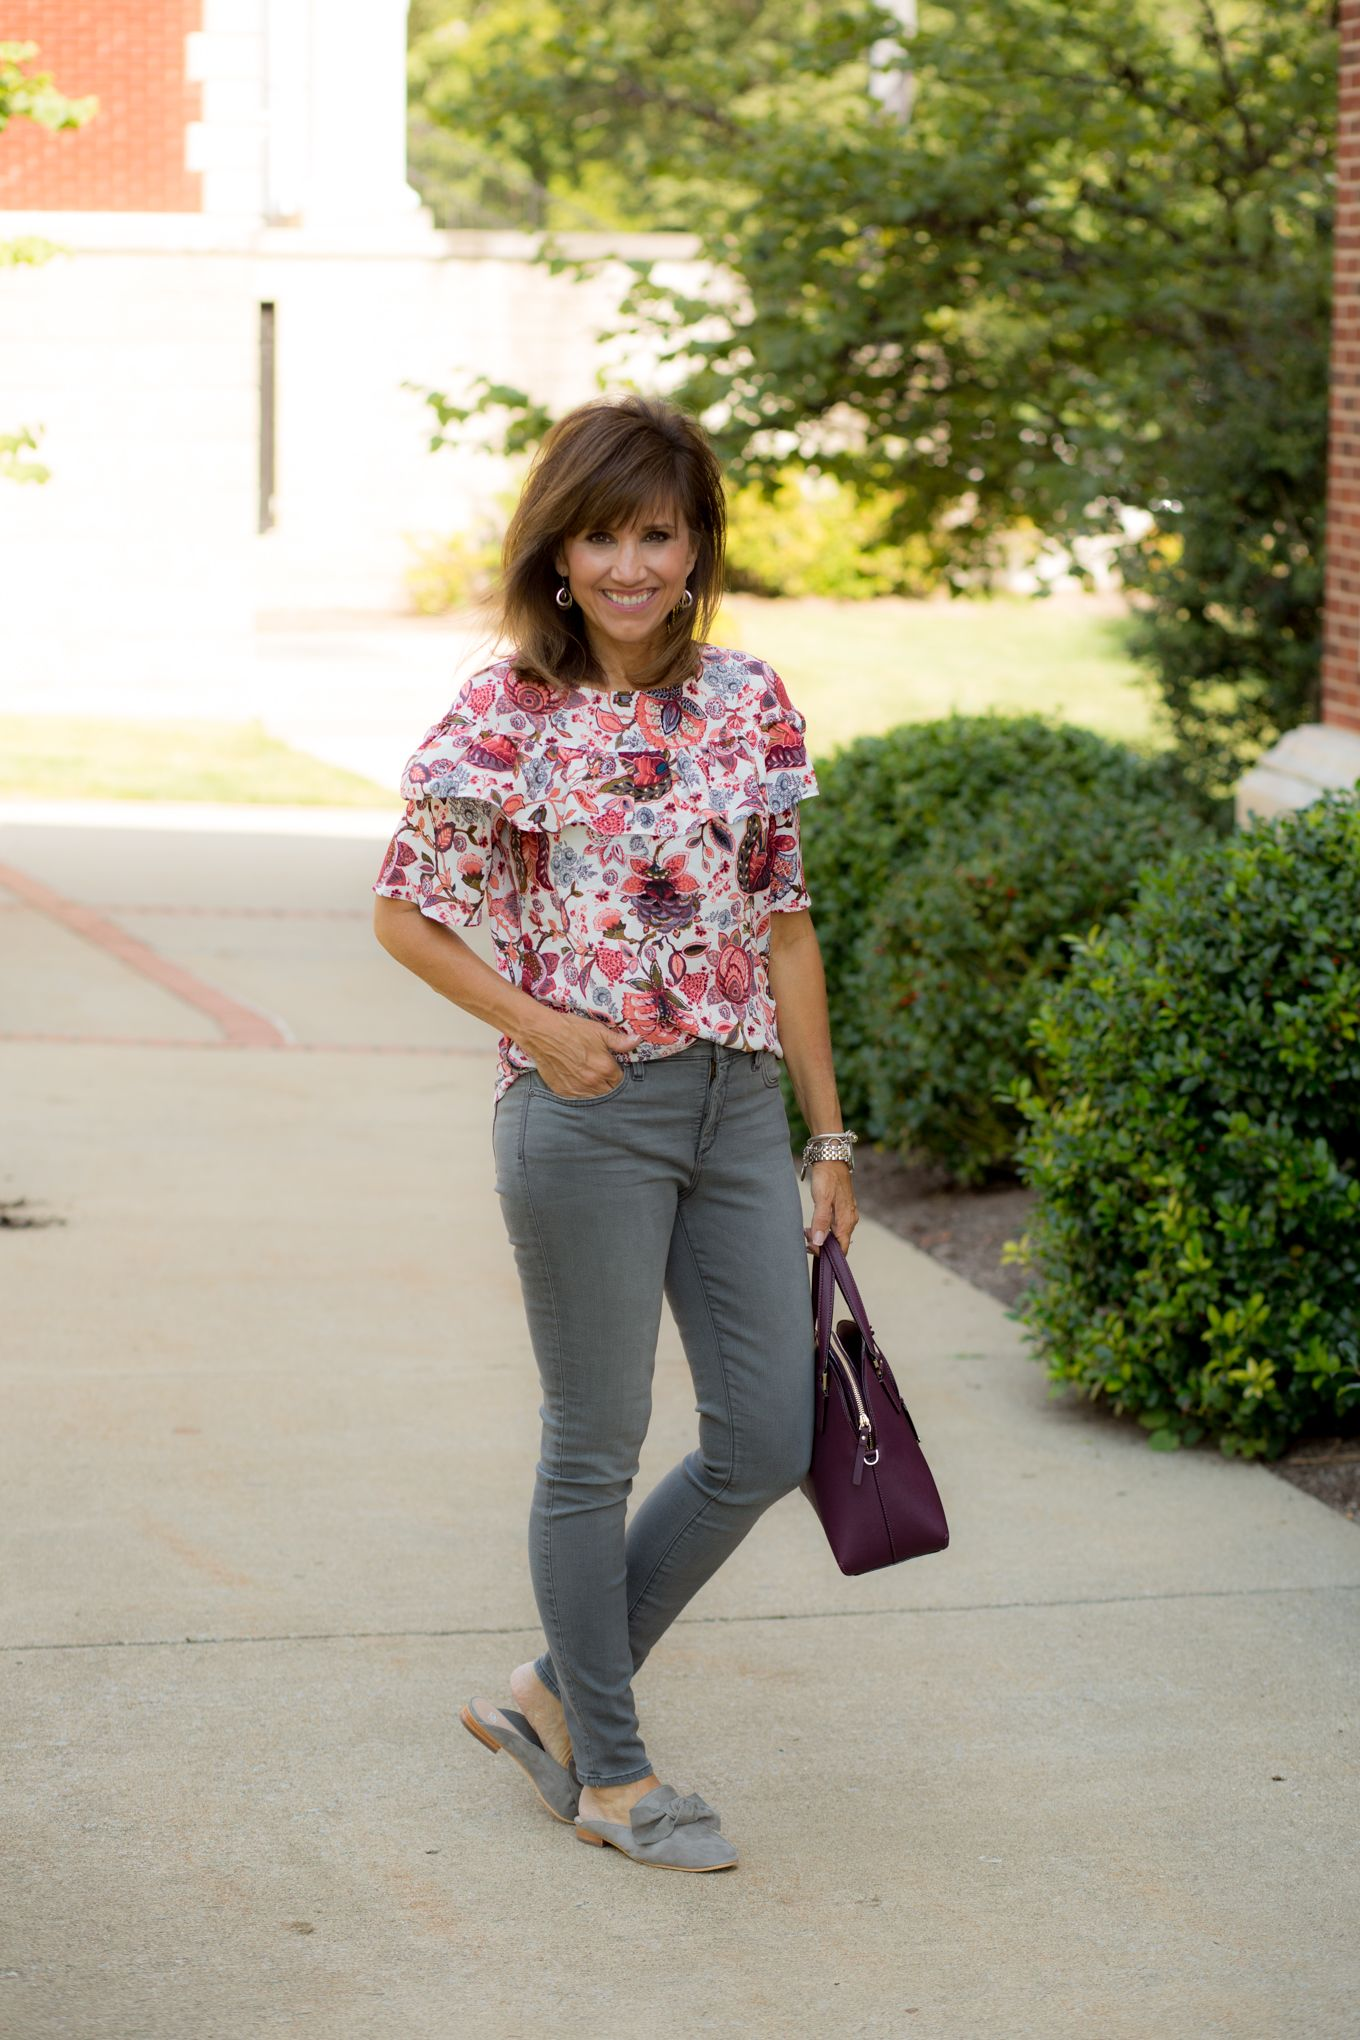 Ruffle Blouse + Mules for Fall is part of Clothes Fall Blouses - Welcome to 26 Days of Fall Fashion! Today I'm sharing a ruffle blouse from LOFT and a pair of mules  Mules are definitely the  it  shoe for fall